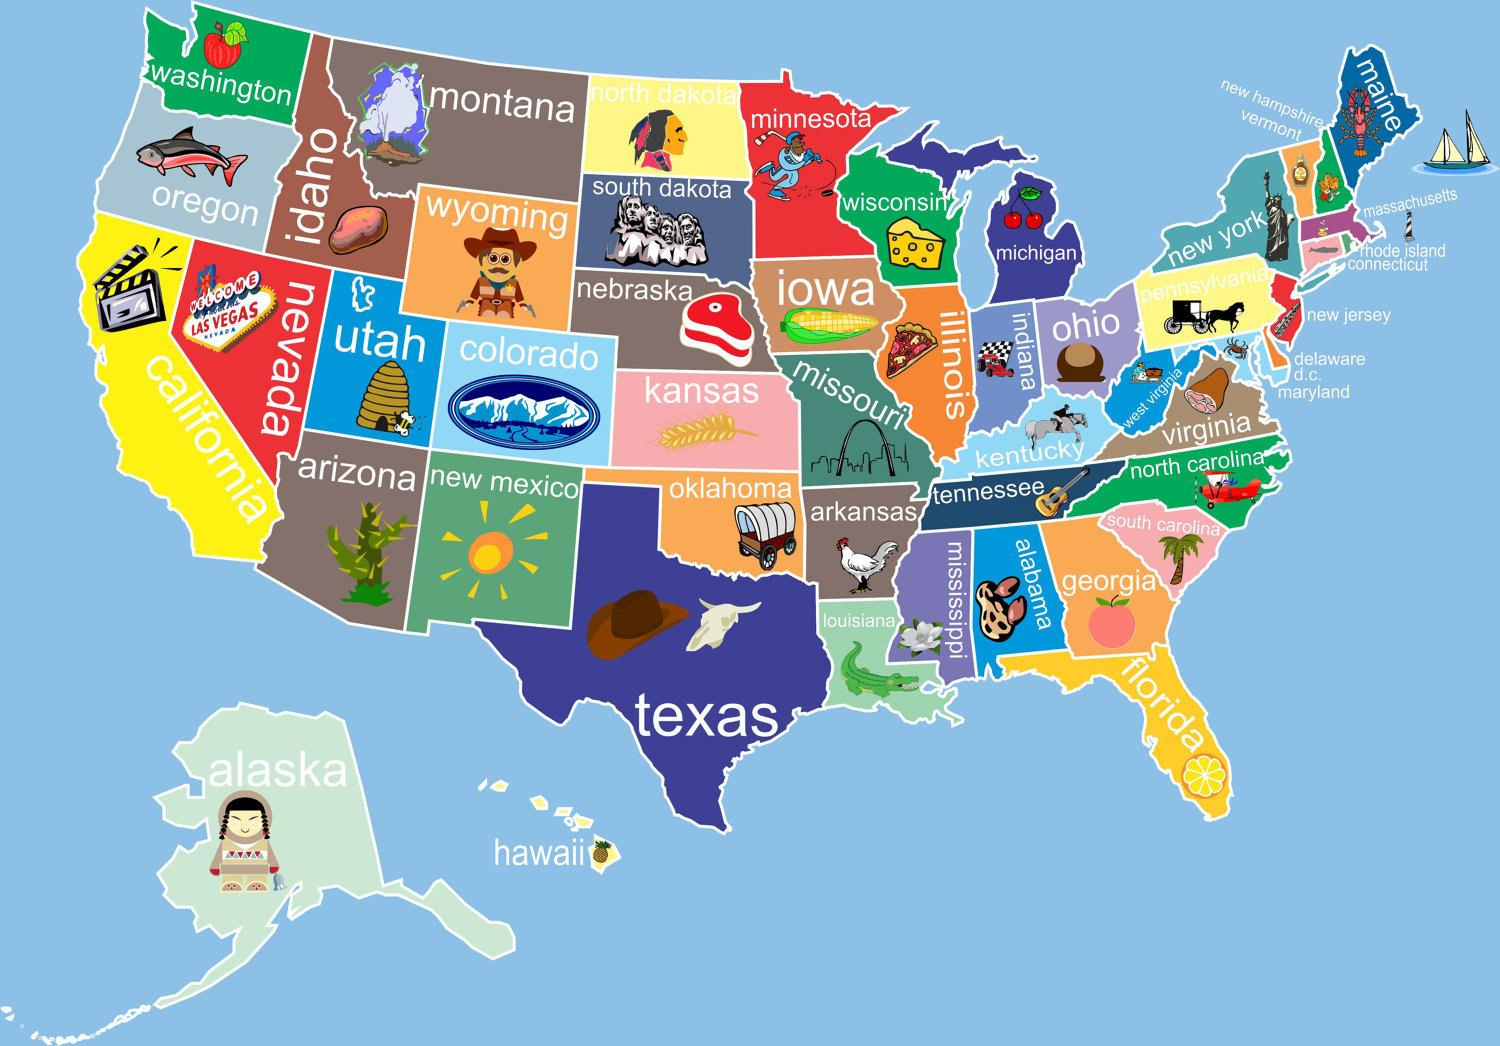 A Picture Of The Map Of The United States.United States States Map United States Map With States Northern